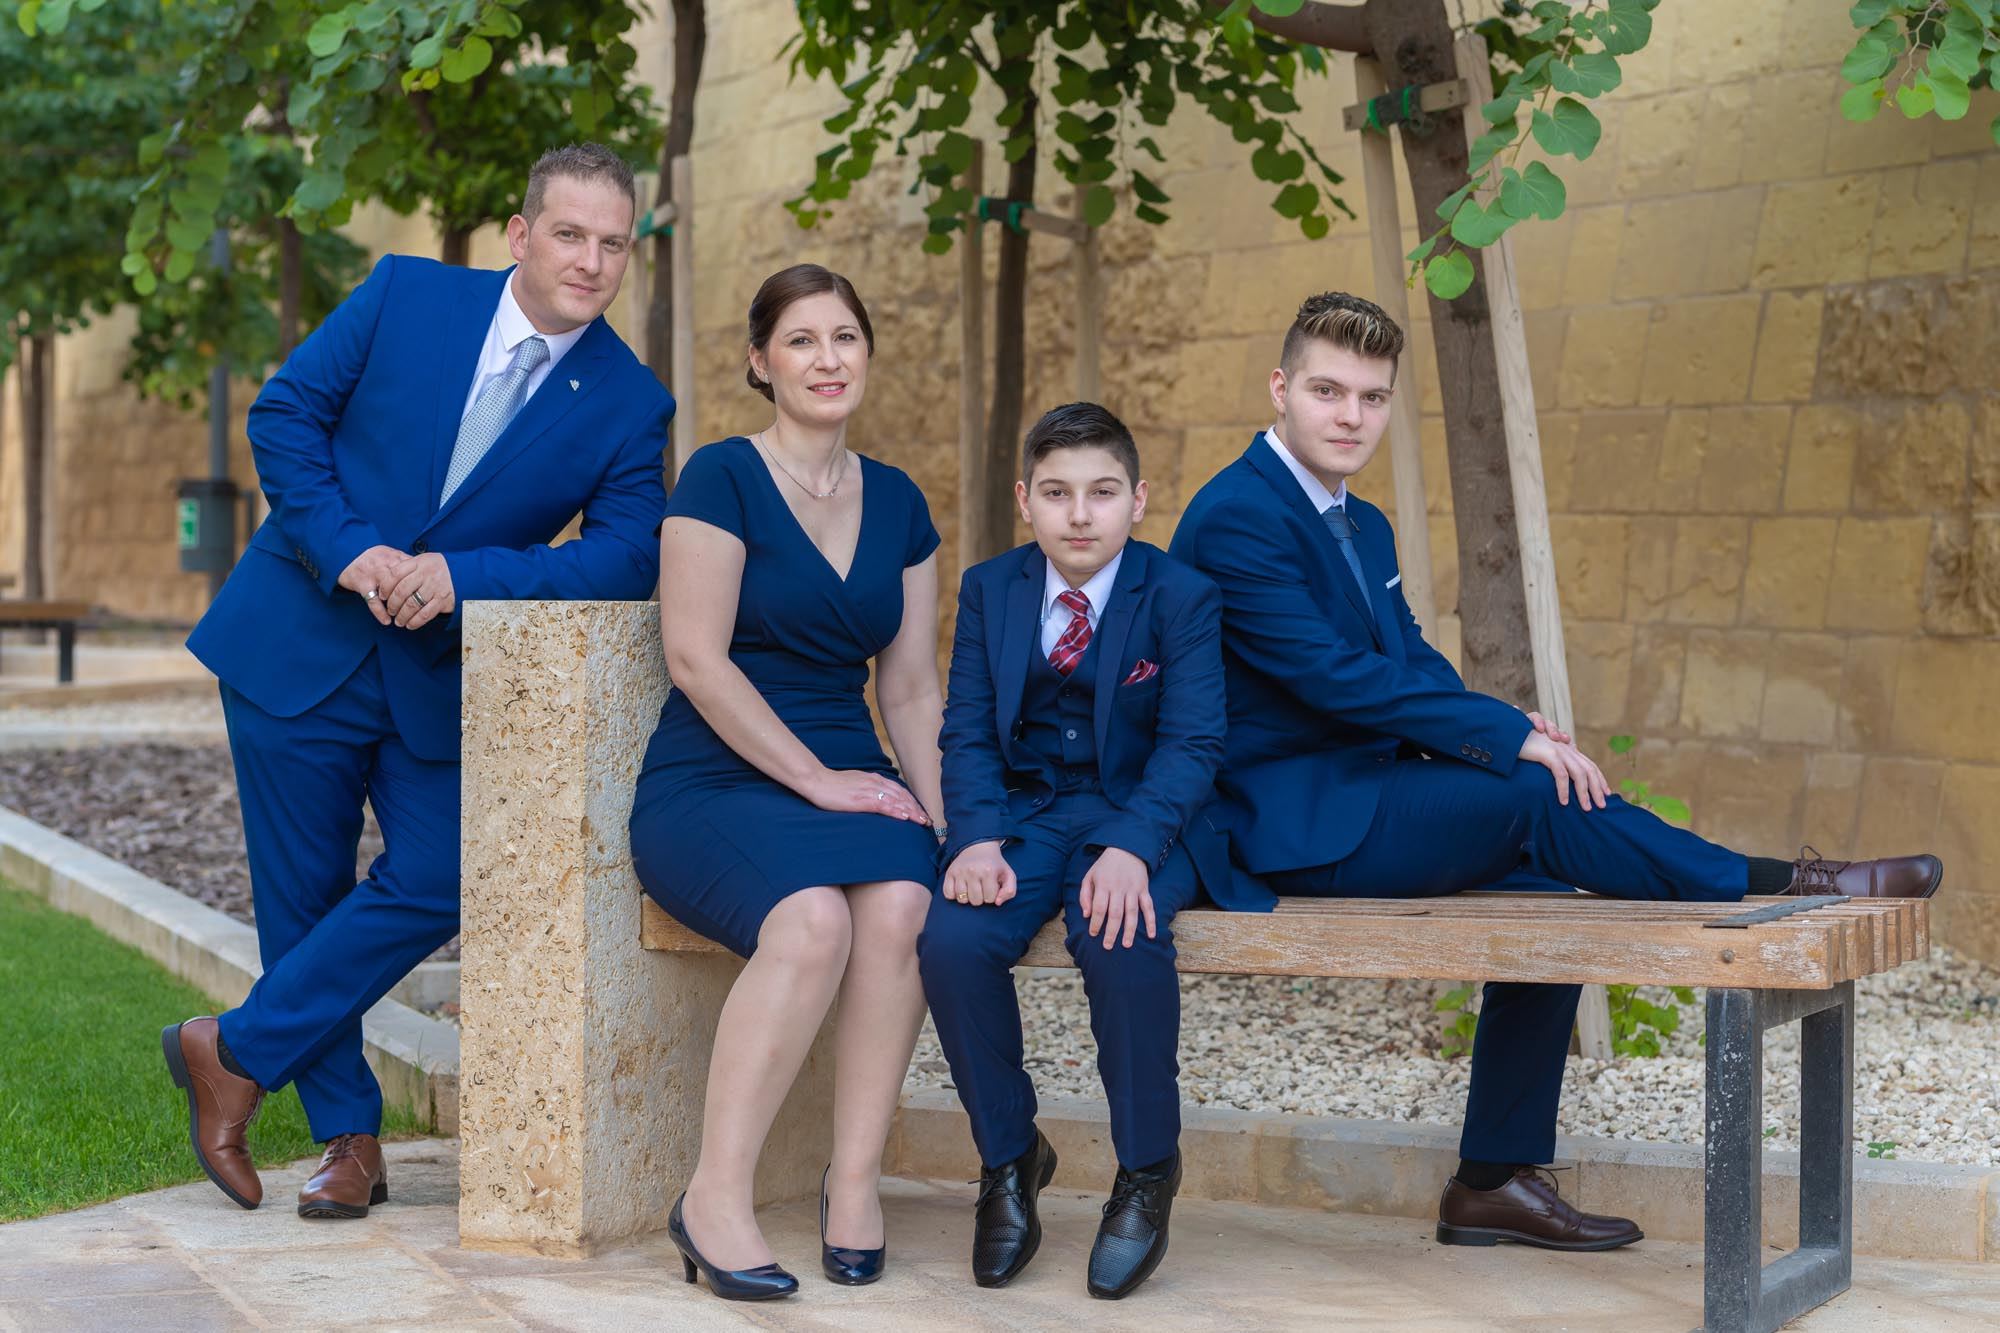 Family with Confirmation son smiling on park bench in Victoria Gozo